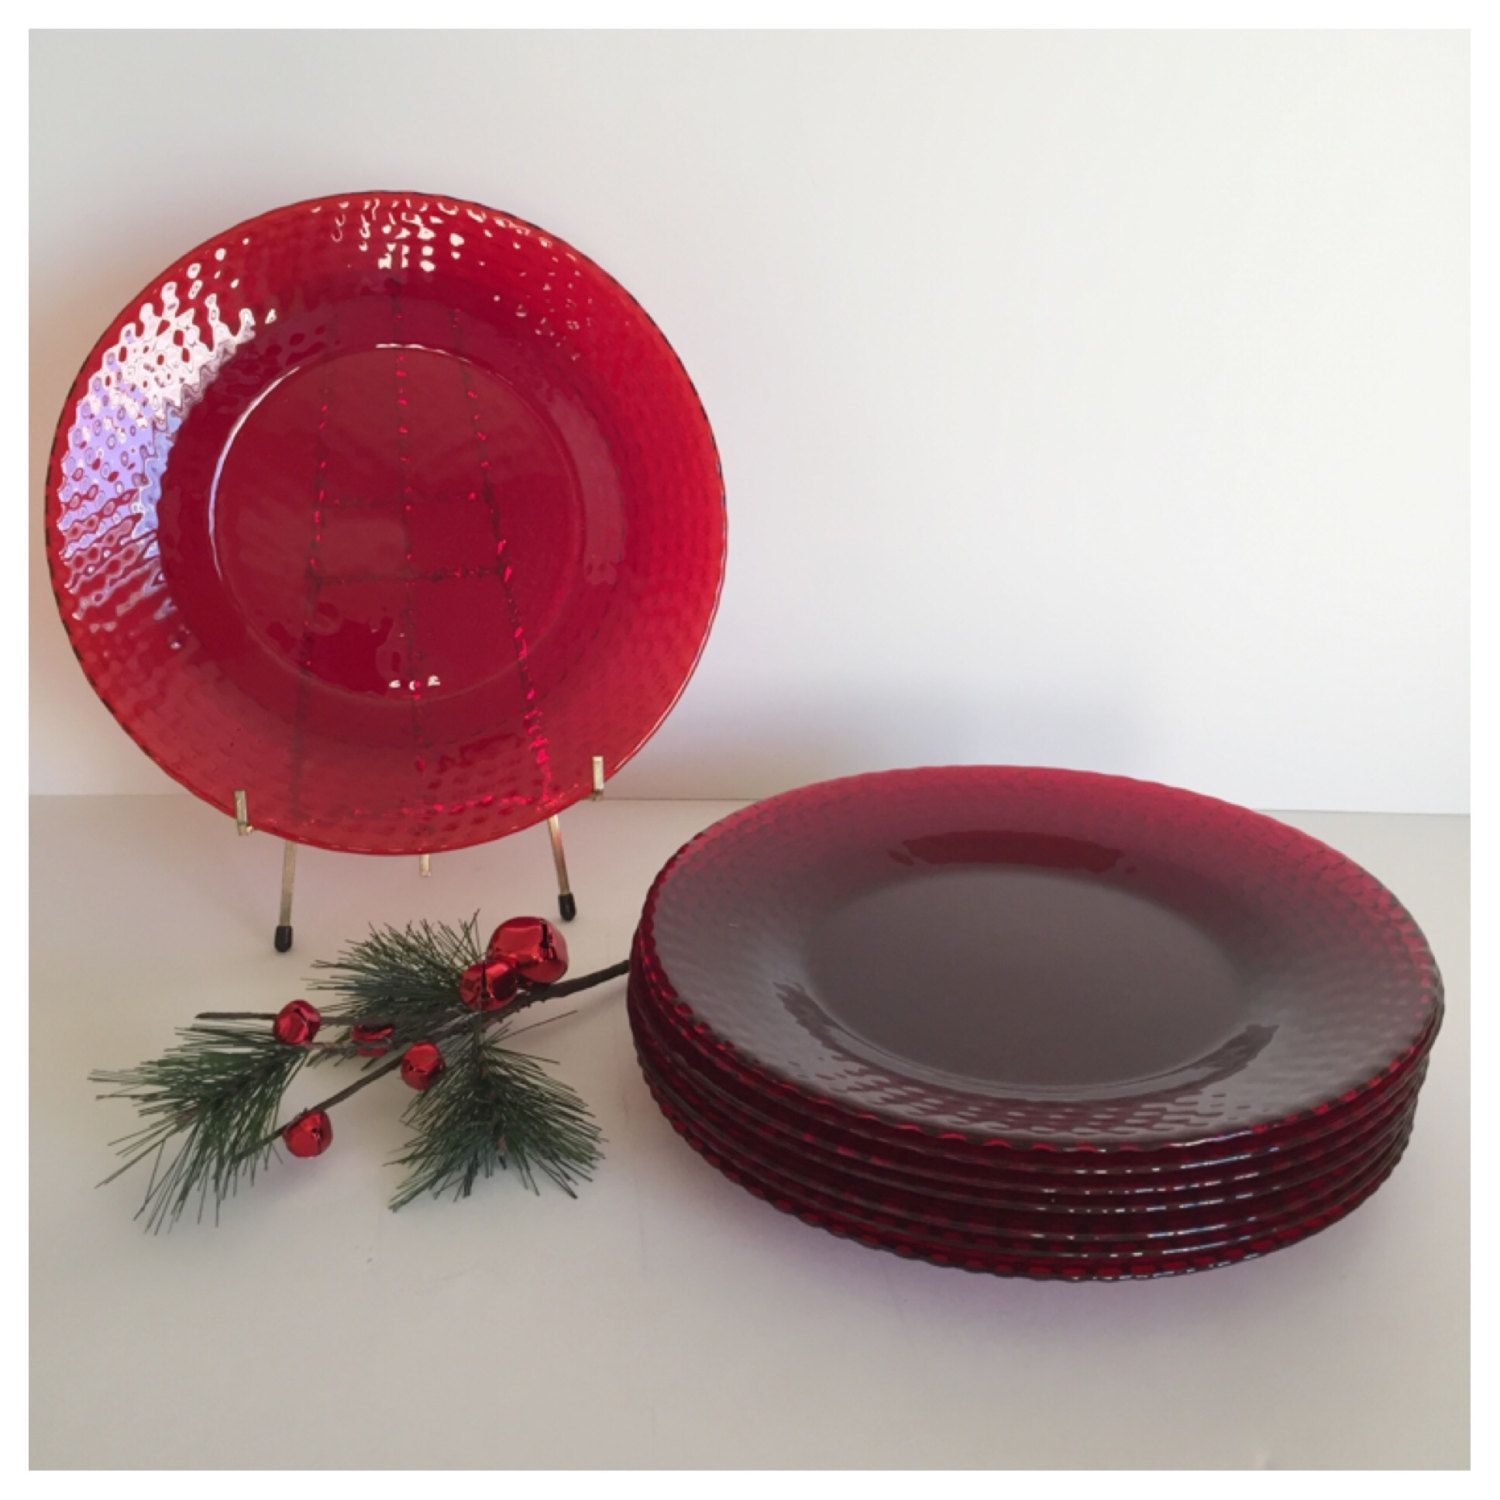 Vintage Red Glass Dinner Plates, Red Glass Plates, Christmas Dishes,  Holiday Dinnerware,